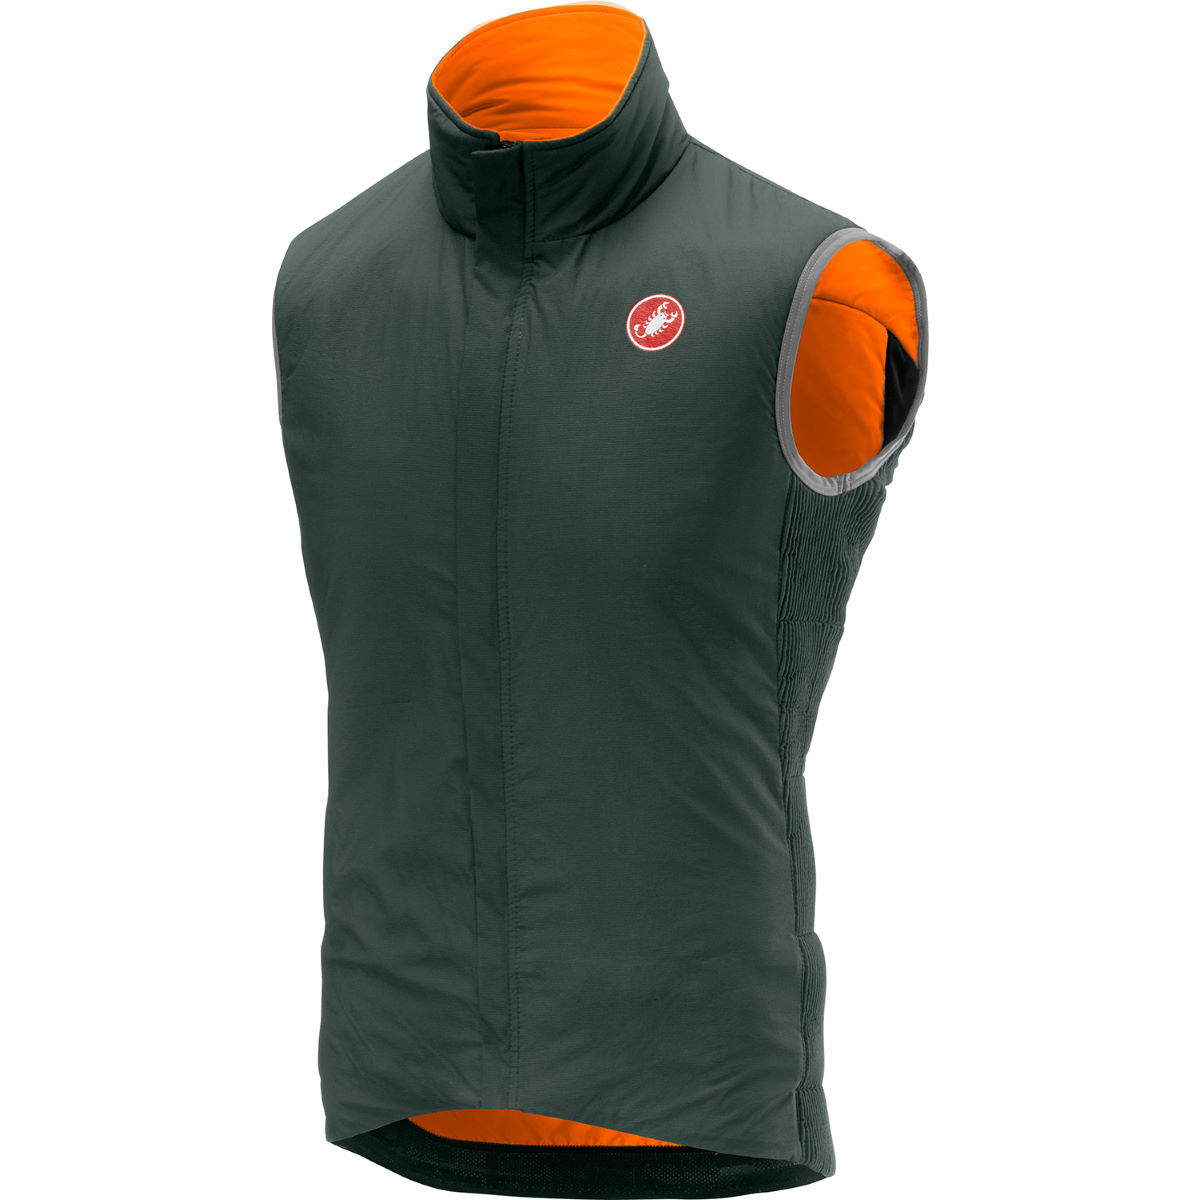 Castelli Elemento Lite Gilet in Black - Medium only to Clear.